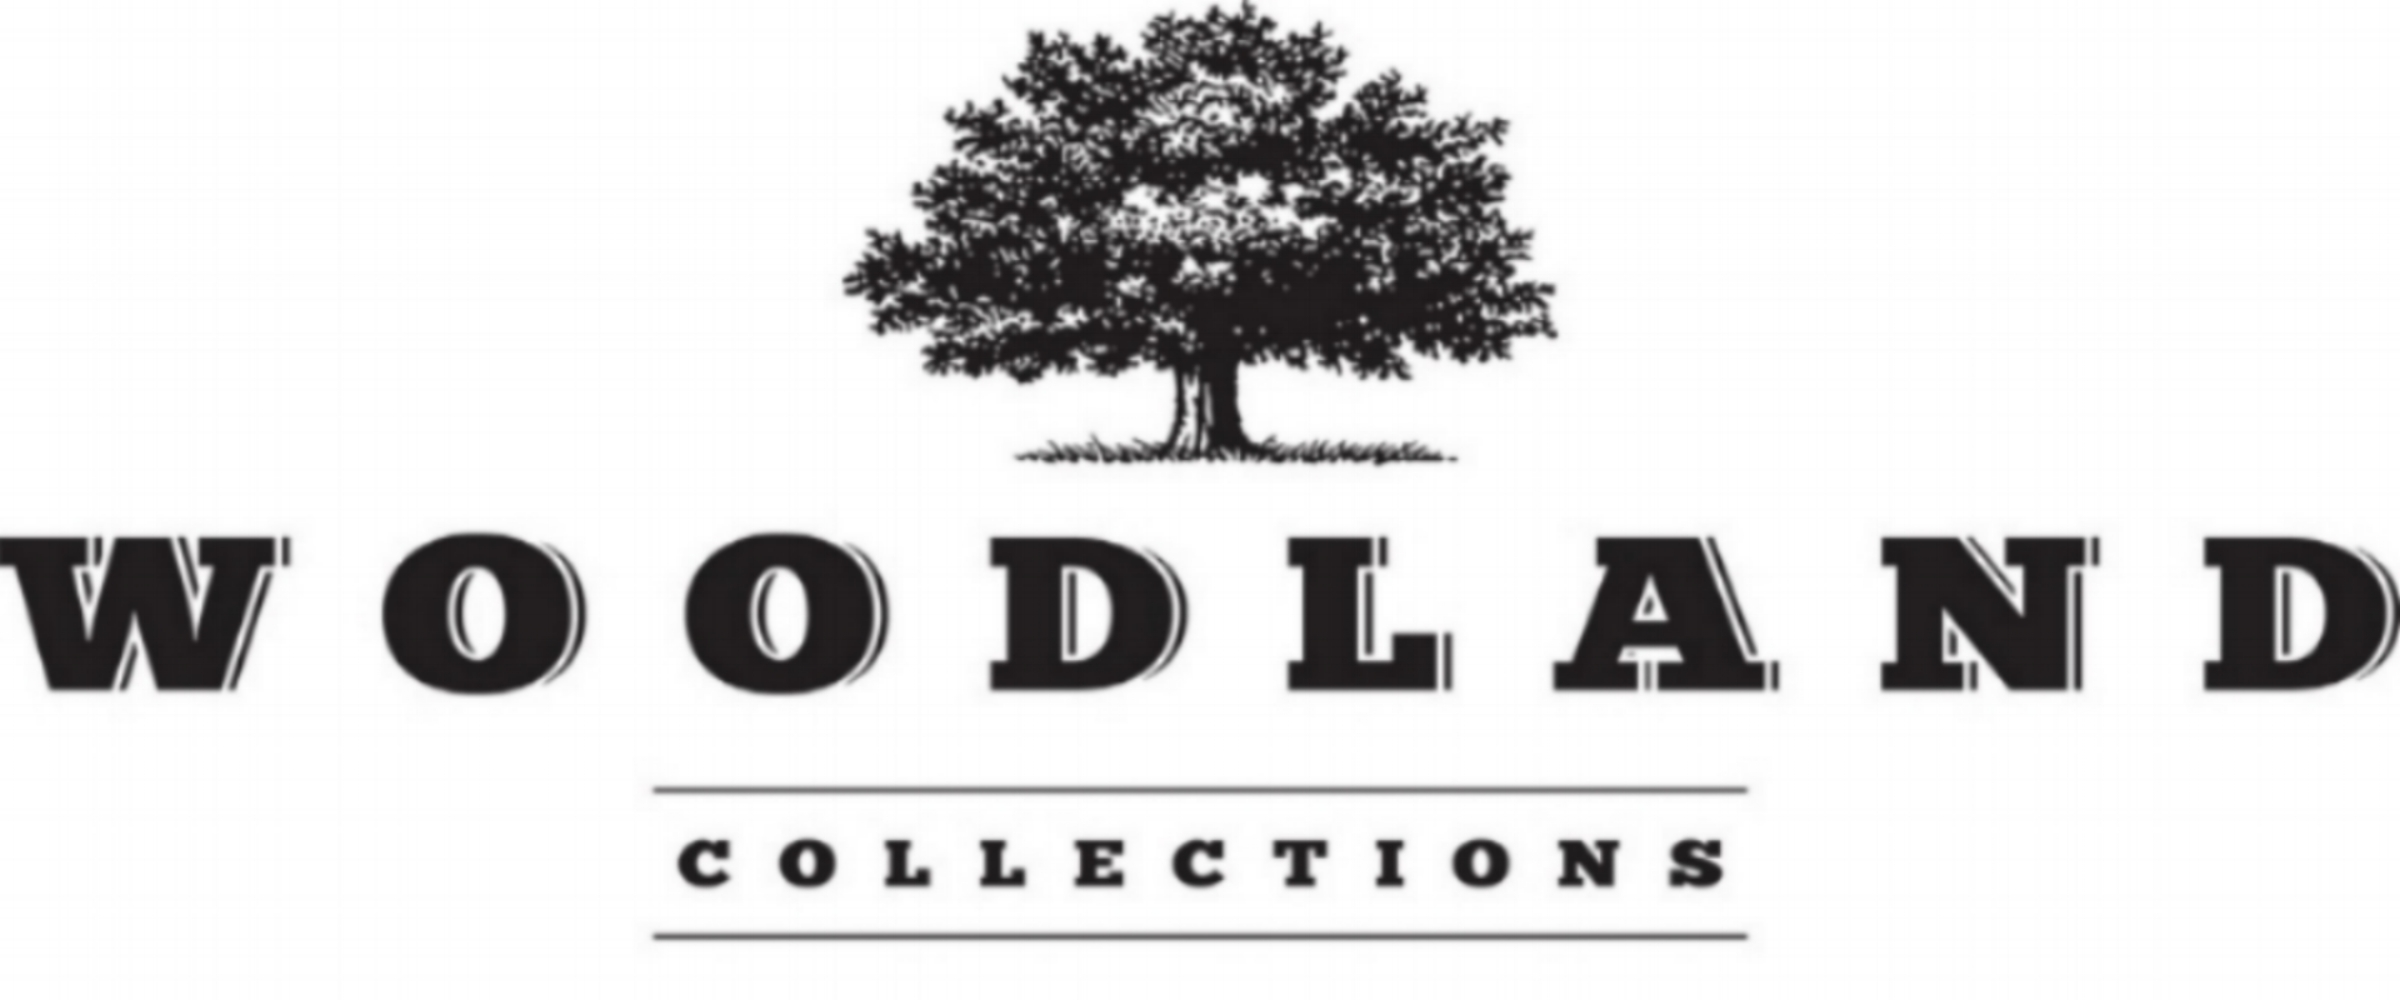 Woodland Collections